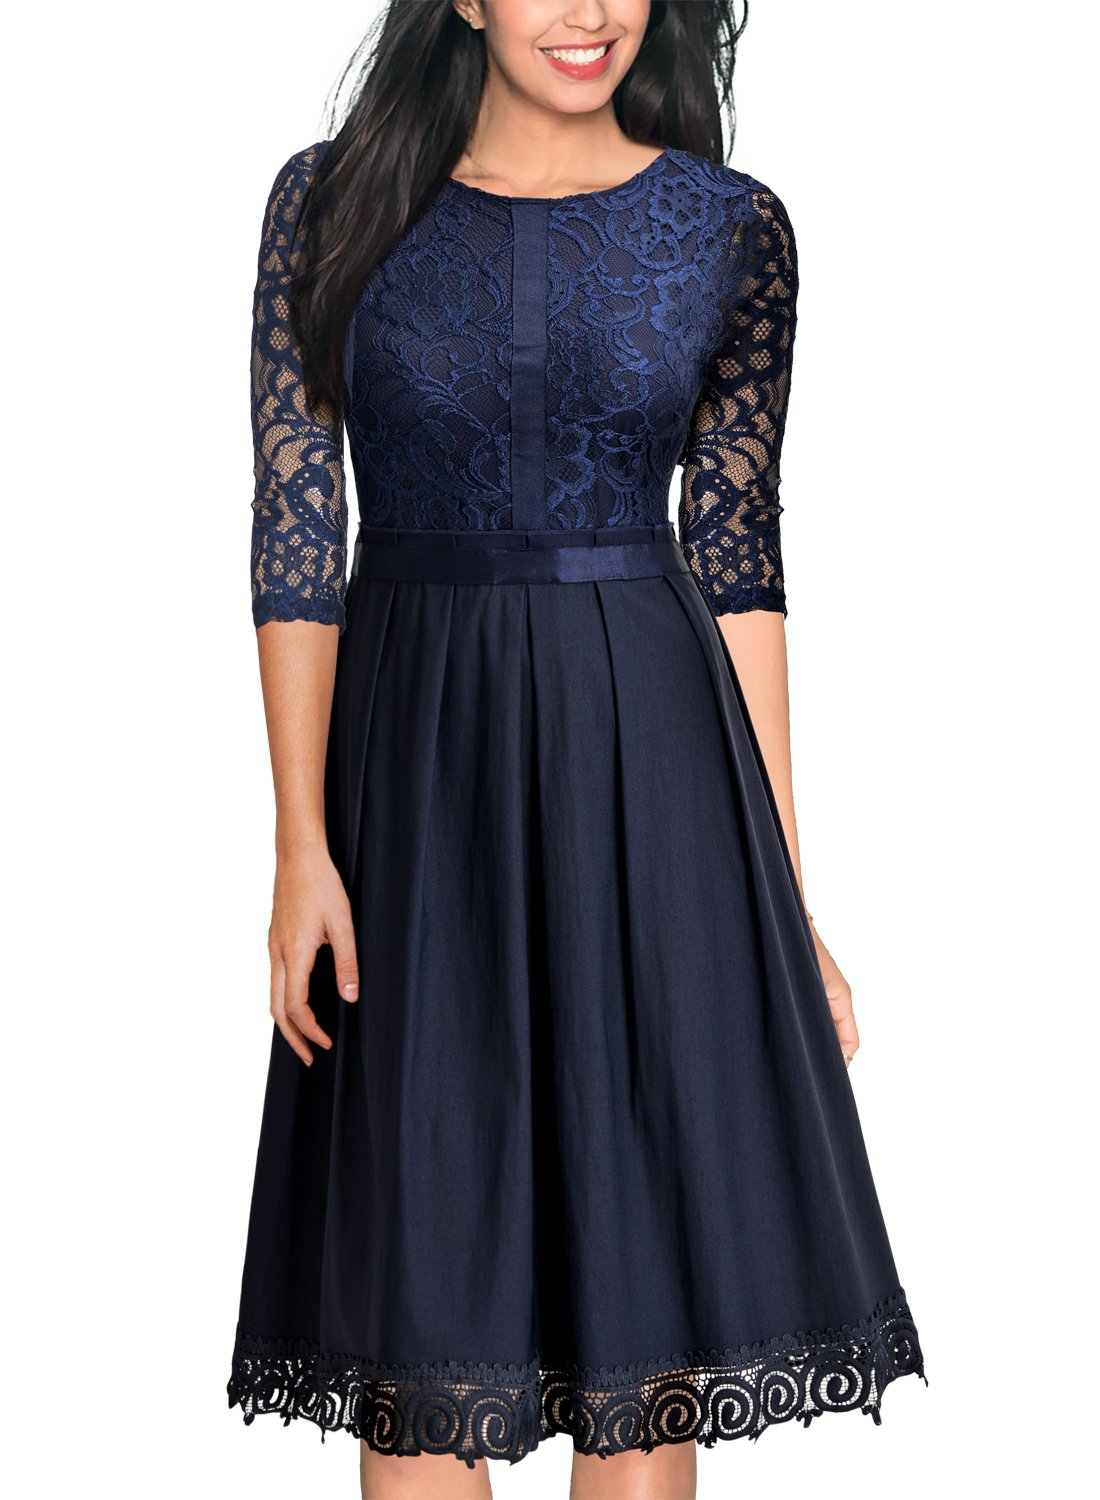 MissMay Women's Vintage Half Sleeve Floral Lace Cocktail Party Pleated Swing Dress Navy Blue Large